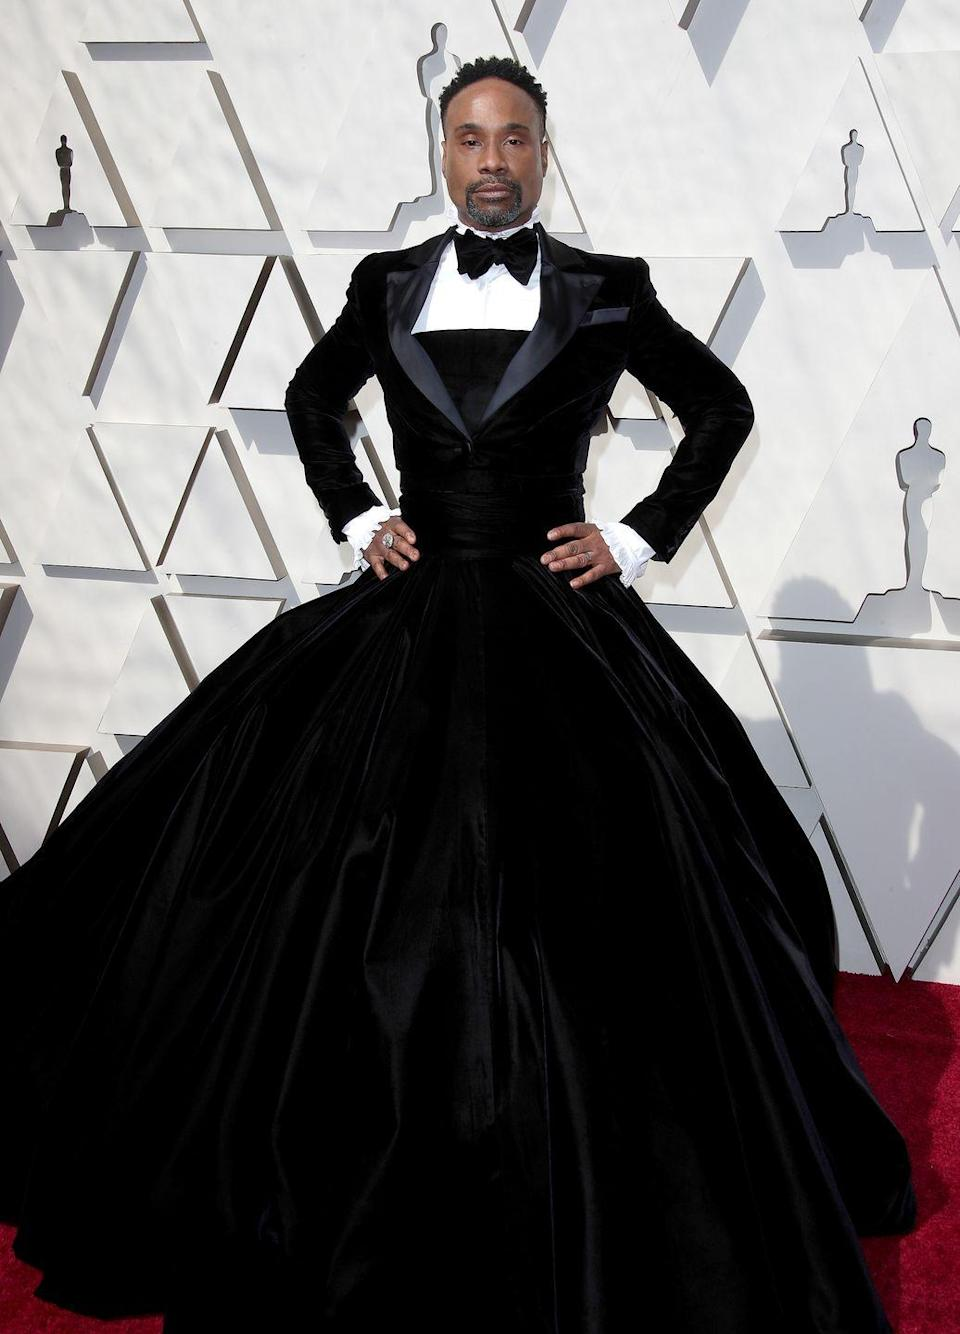 """<p><em>Pose</em> star Billy Porter turned heads when he arrived at the Academy Awards wearing this incredible Christian Siriano design. Speaking to <em>Vogue </em>about the dress, he said, """"My goal is to be a walking piece of political art every time I show up. To challenge expectations. What is masculinity? What does that mean? Women show up every day in pants, but the minute a man wears a dress, the seas part."""" </p>"""